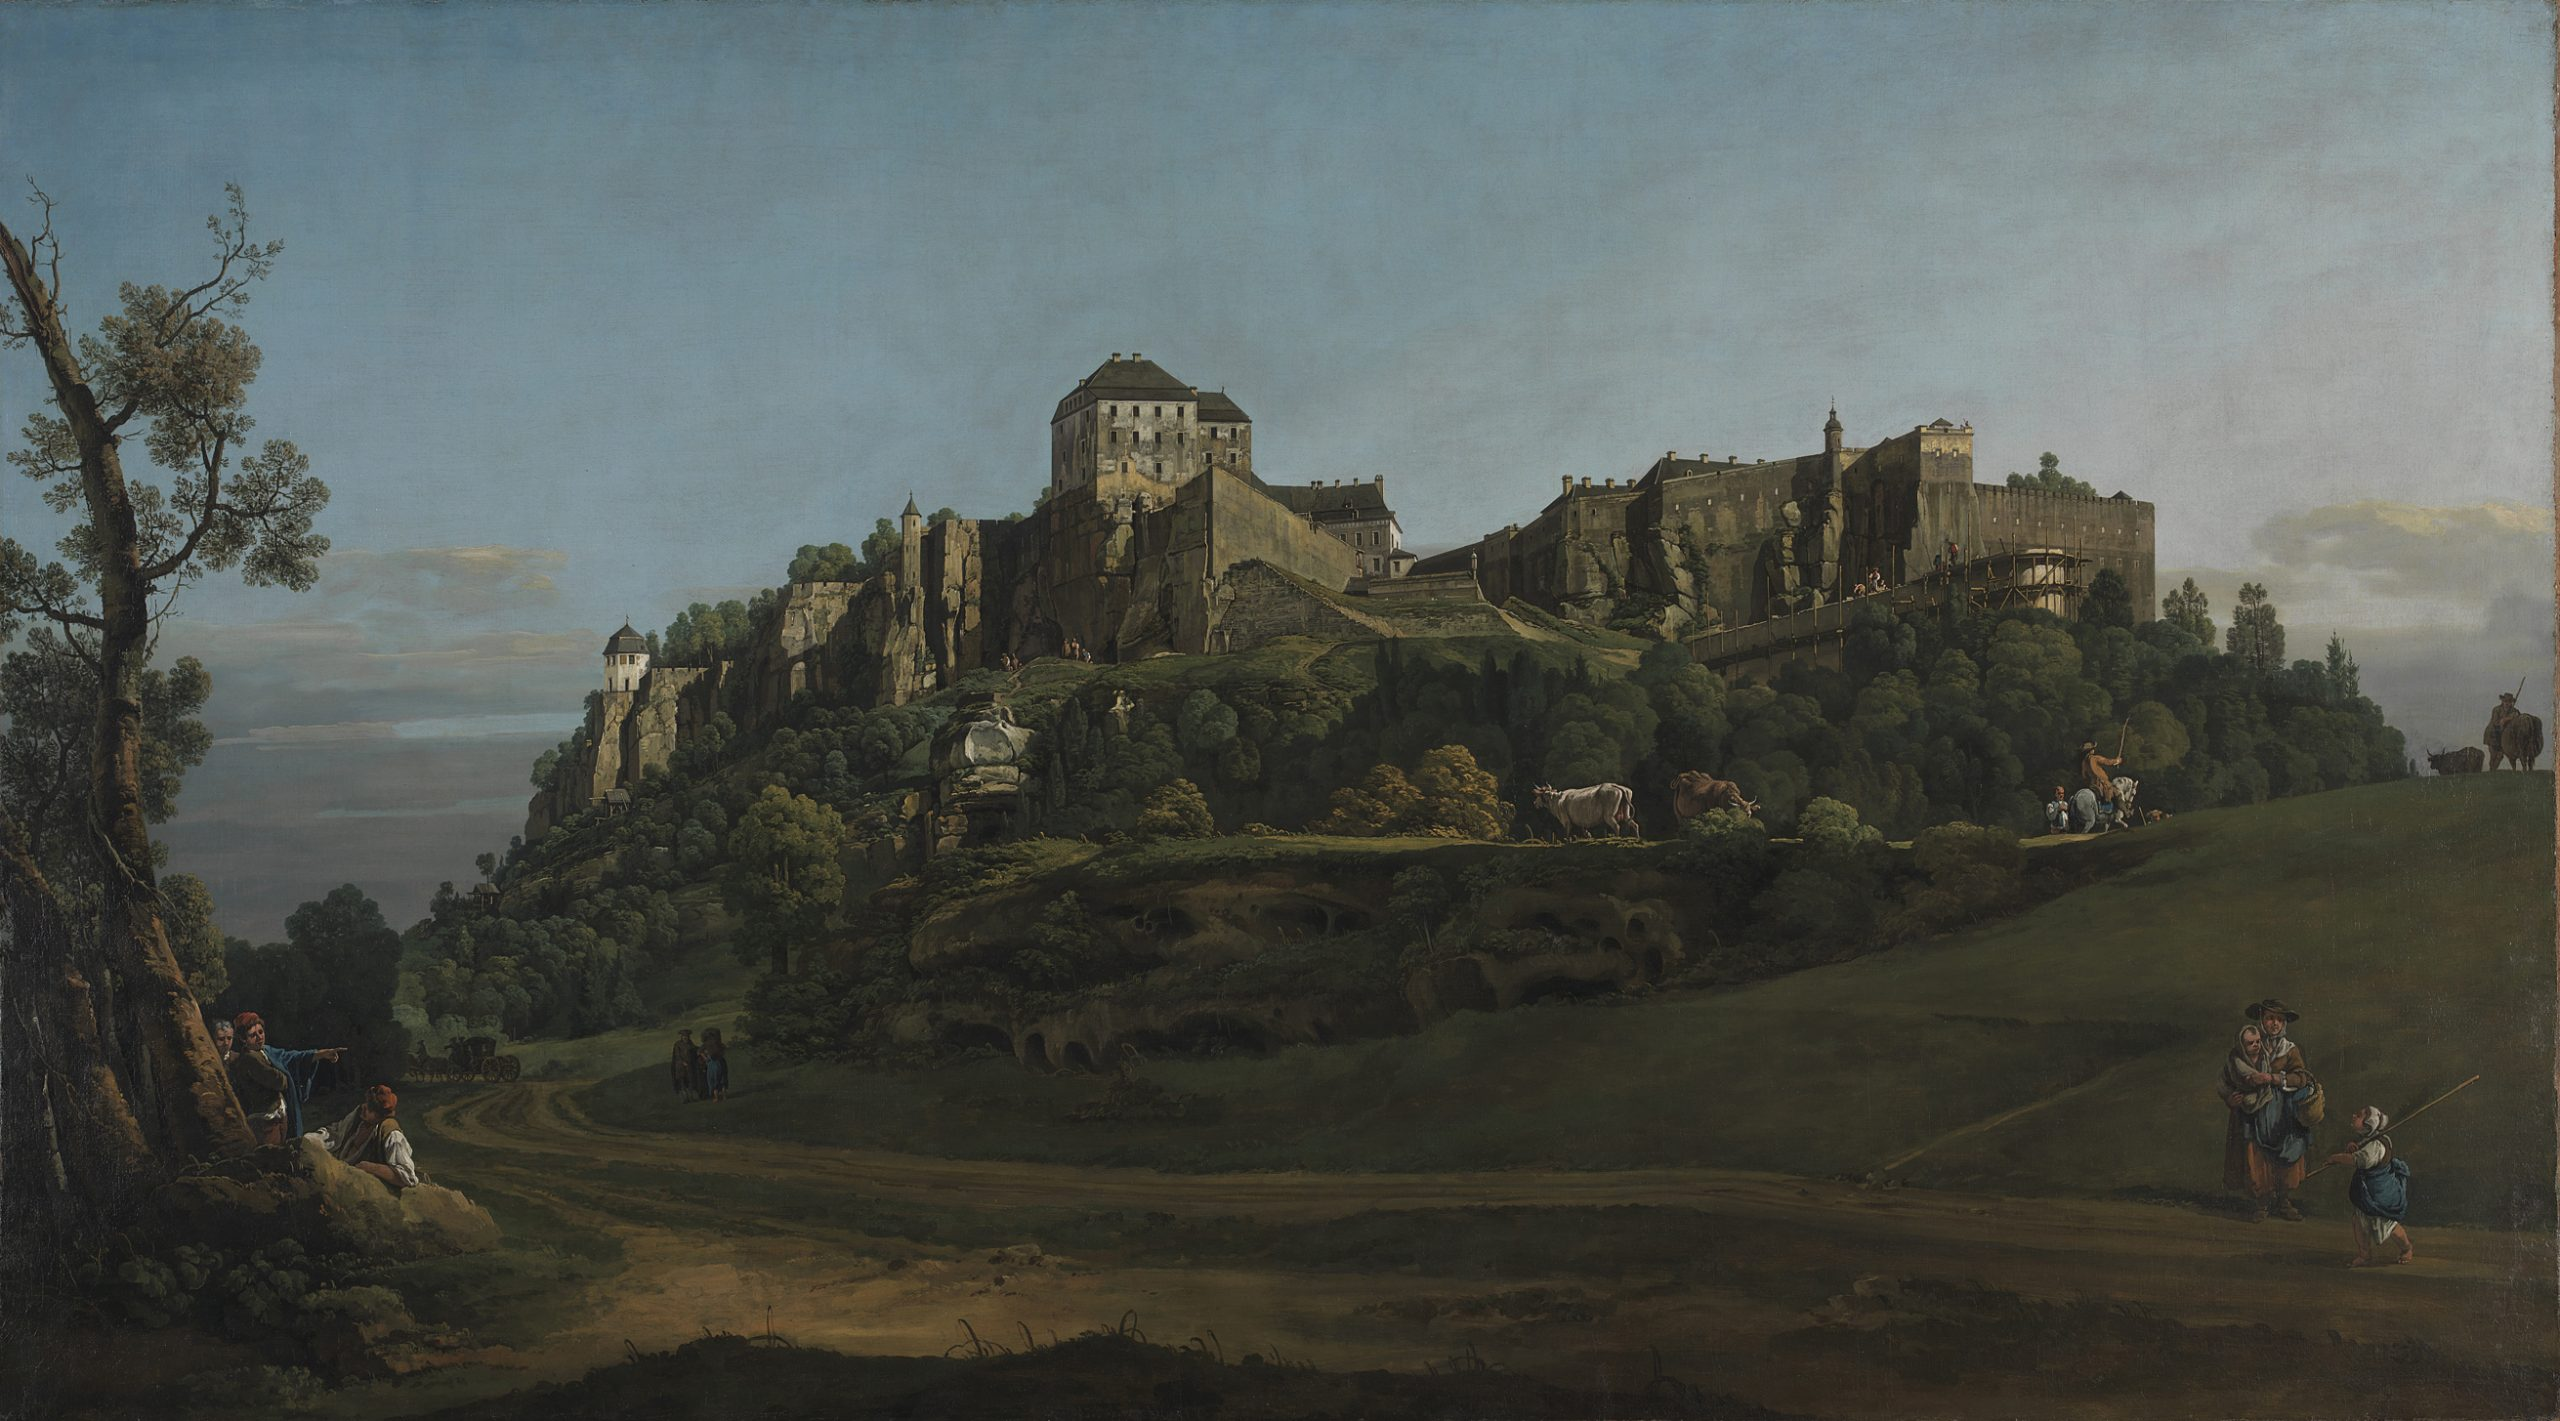 Bernardo Bellotto, The Fortress of Königstein from the North, 1756-8, Oil on canvas, 132.1 × 236.2 cm, © The National Gallery, London